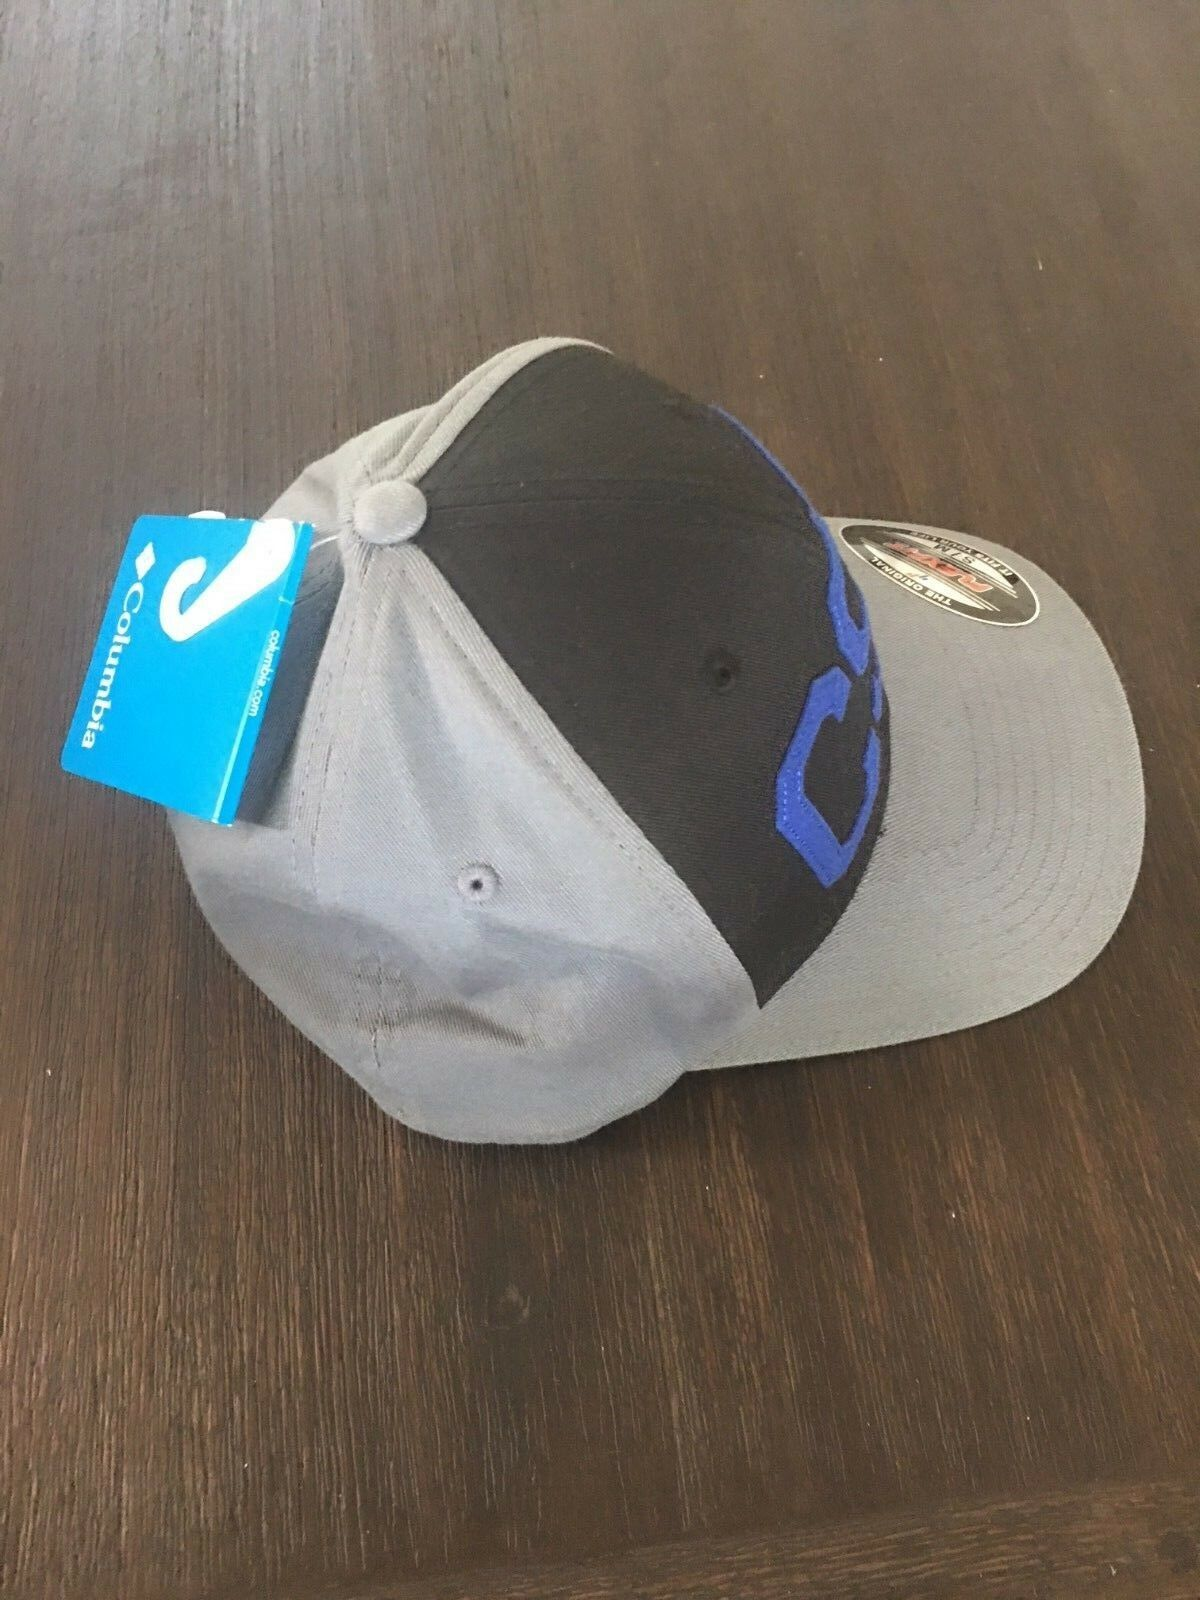 6c4adfe16d38c Columbia Sportswear Portland Ave Cap Hat Gray Black S m Xu0020 010 With Tags  for sale online